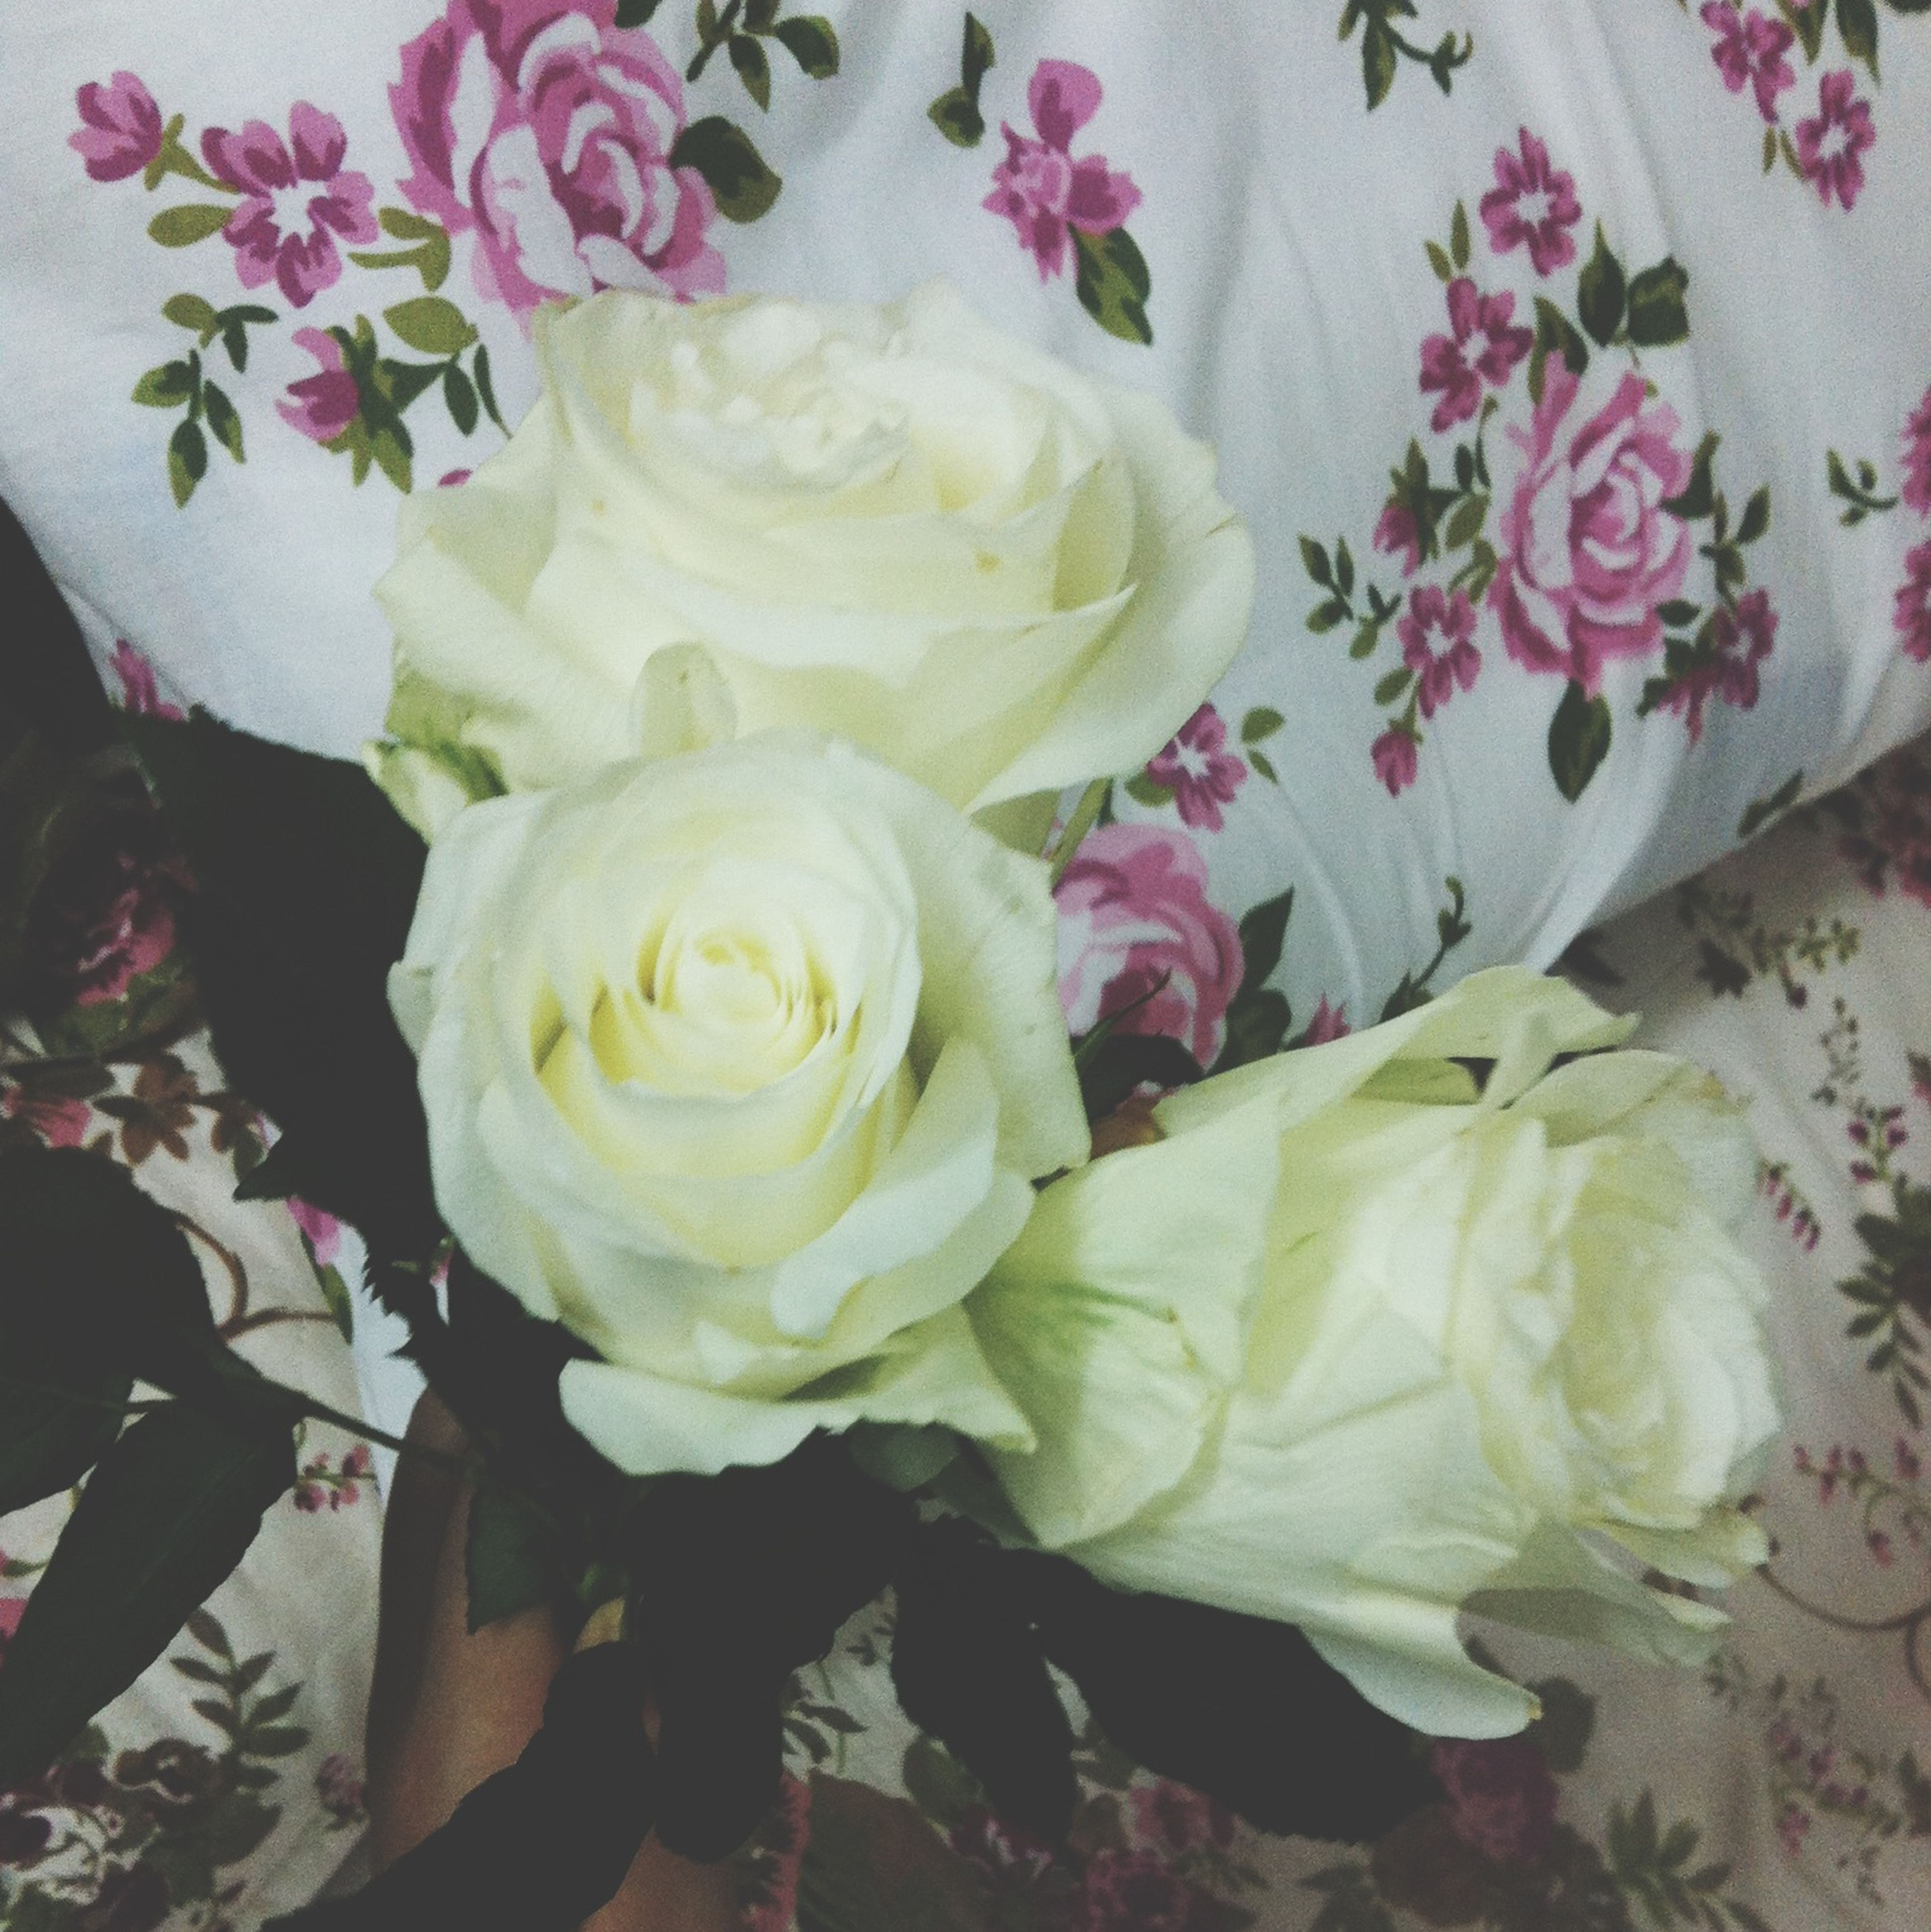 flower, rose - flower, freshness, petal, indoors, fragility, flower head, bouquet, pink color, beauty in nature, high angle view, close-up, rose, decoration, white color, vase, nature, growth, bunch of flowers, blooming